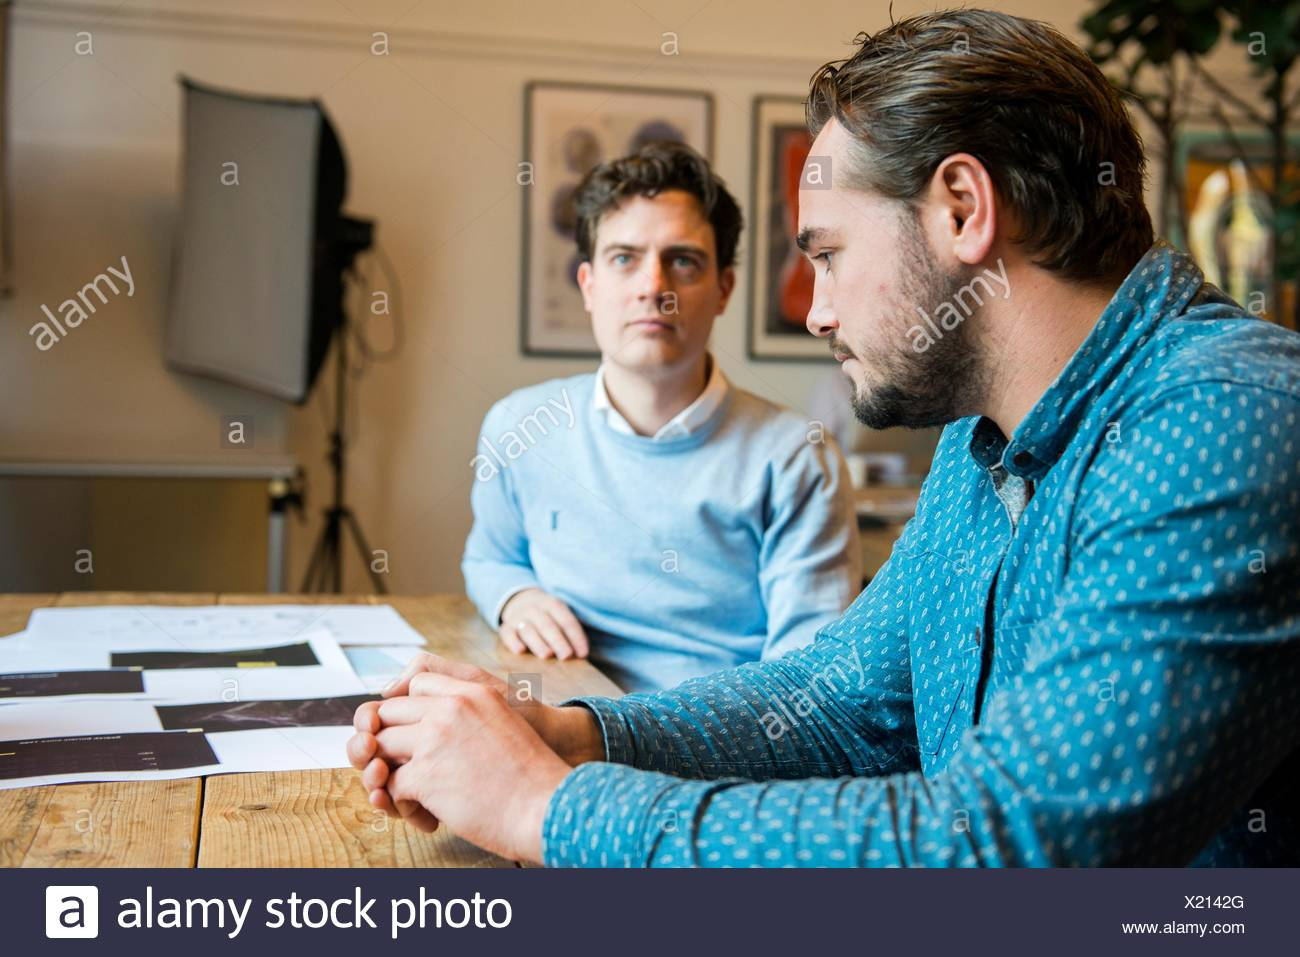 Utrecht, Netherlands. Two professional, creative males and artists explaining their work in the creation of the Hart Island Project website. - Stock Image